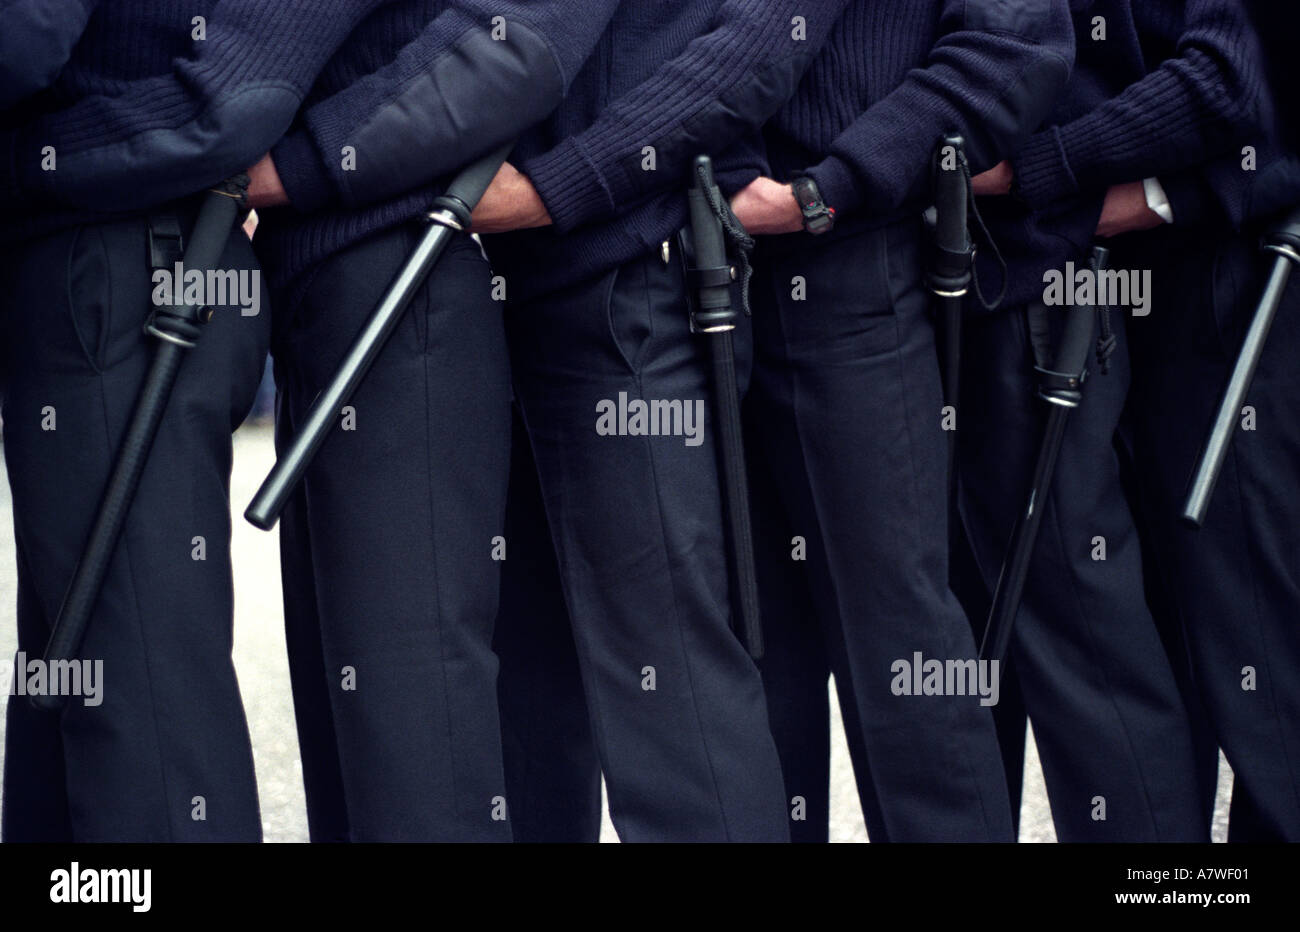 Metropolitan police officers undergoing public order training duties, west London, England. - Stock Image